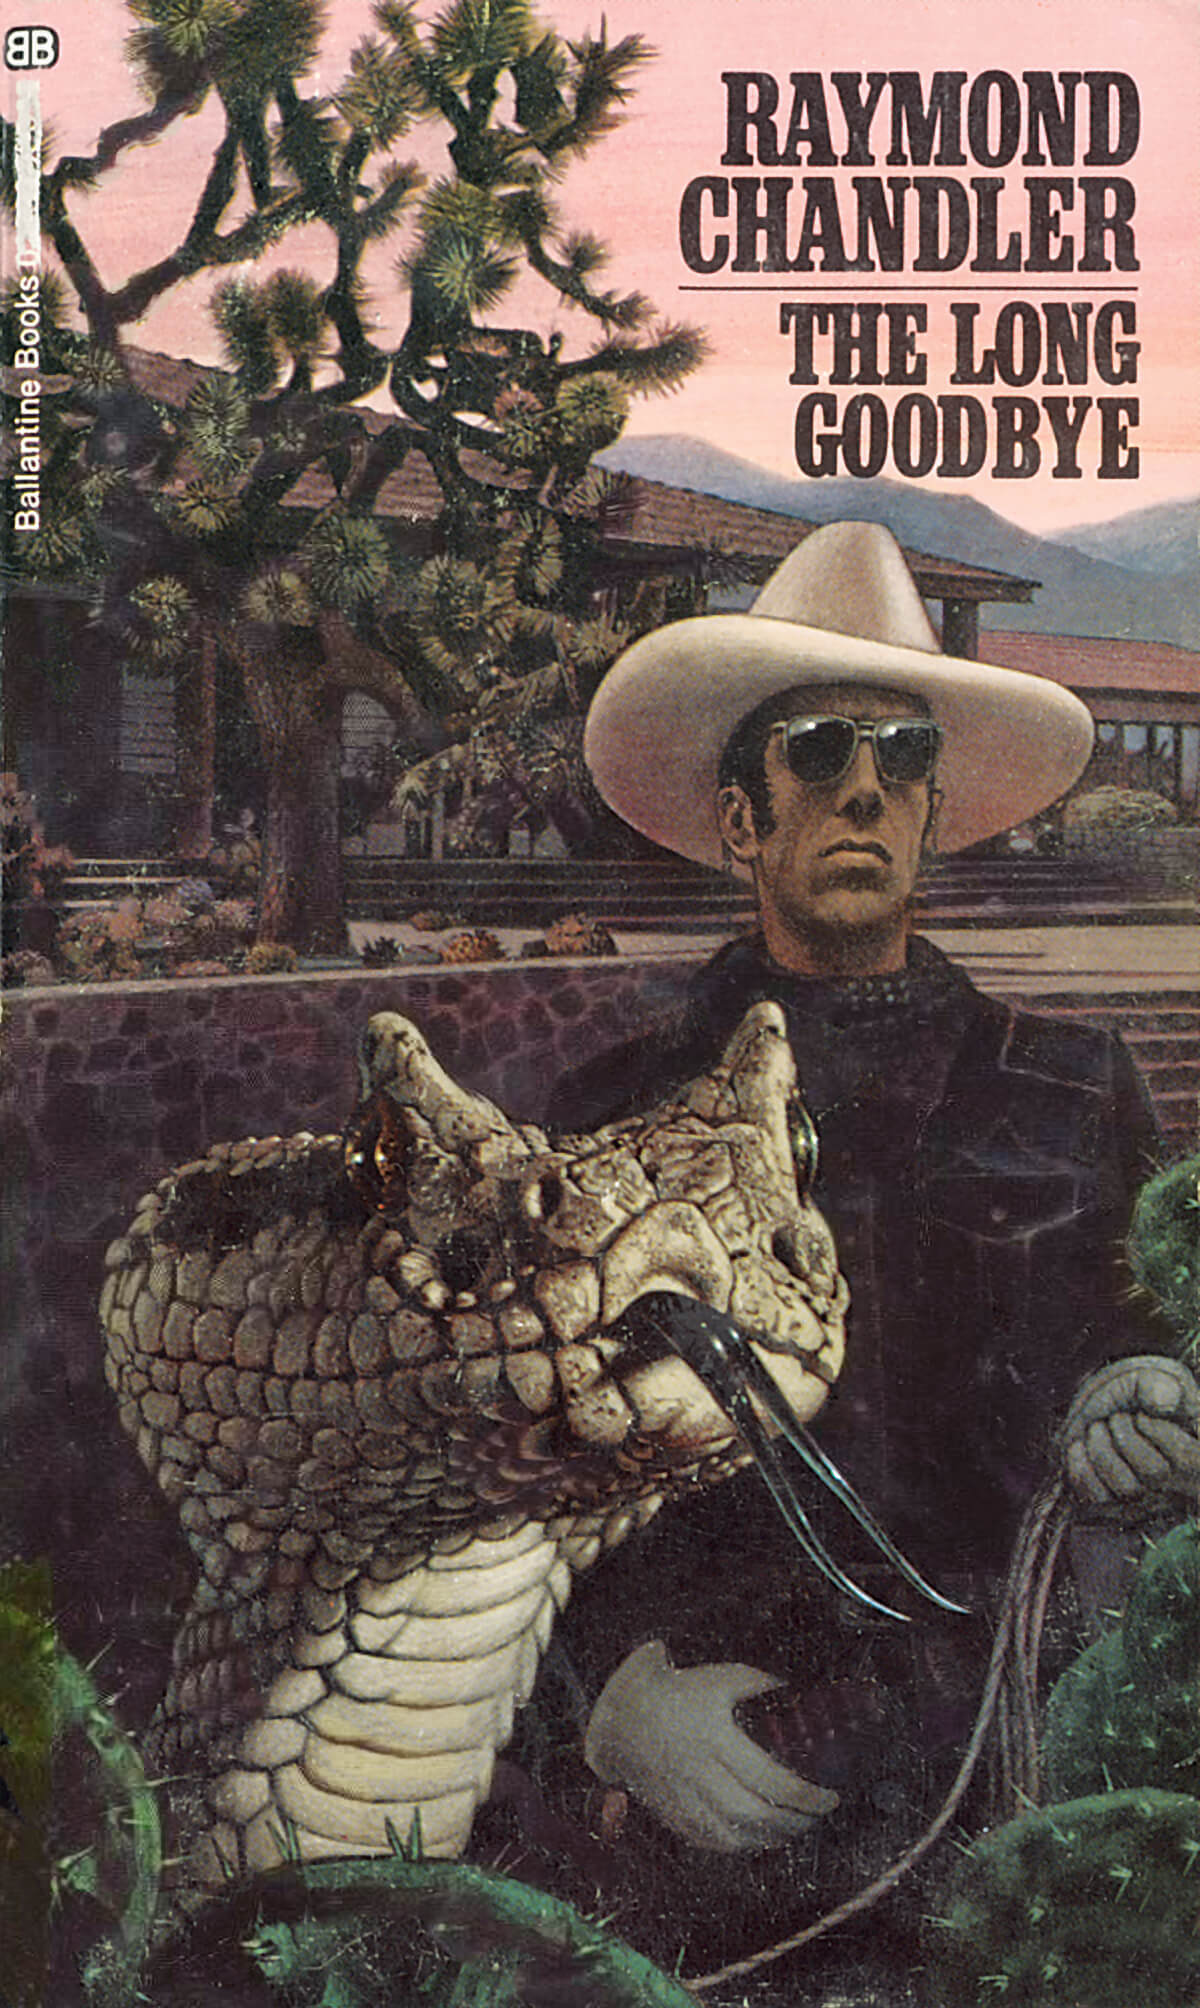 The Long Goodbye by Raymond Chandler, Cover by Tom Adams